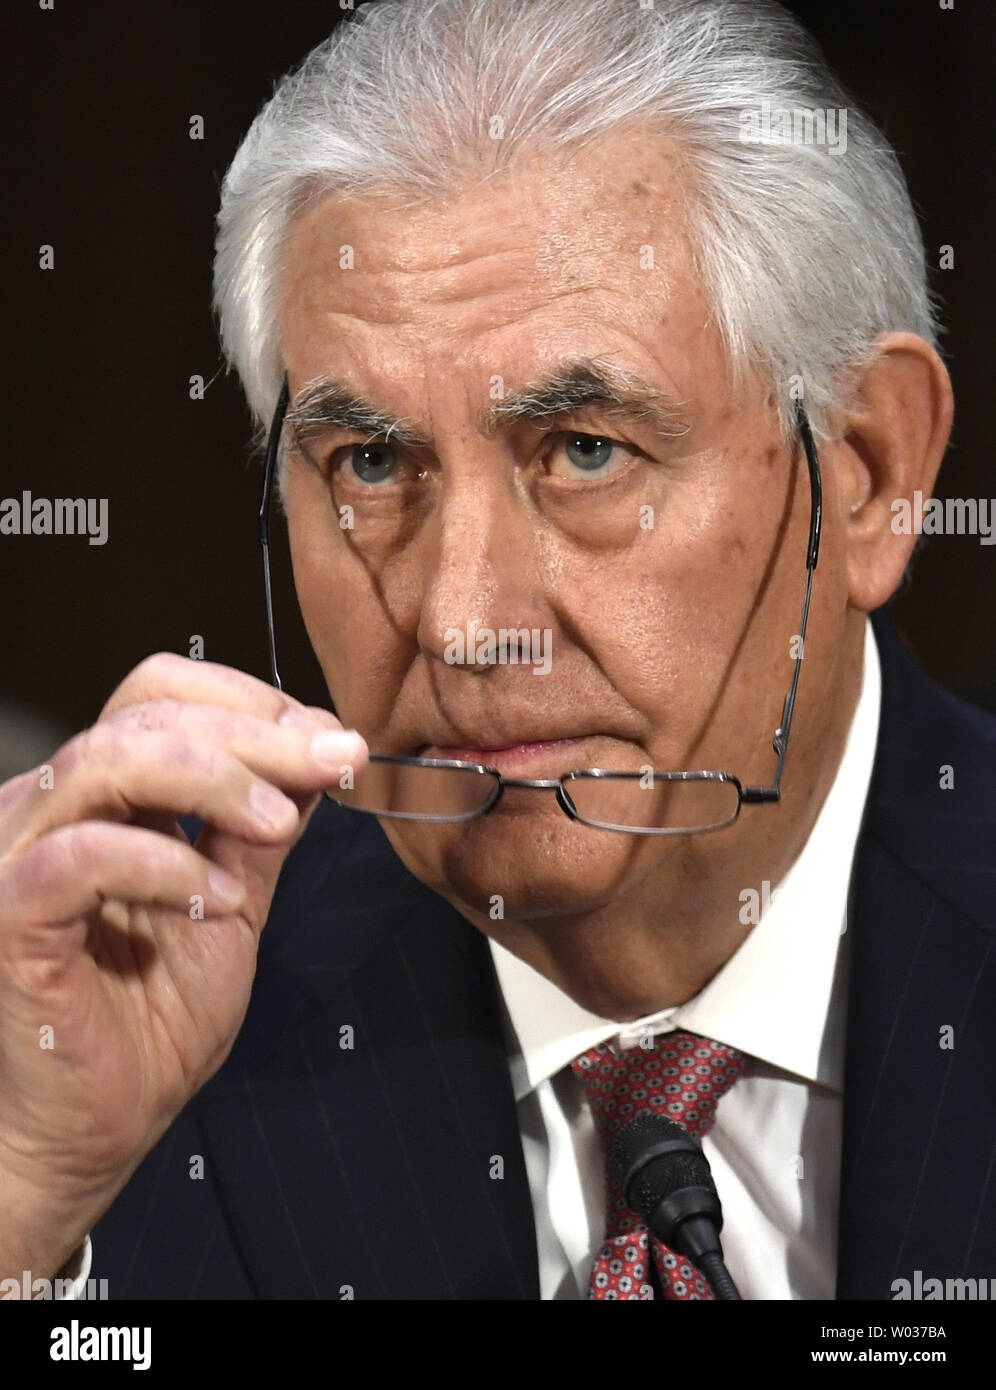 Former ExxonMobil CEO Rex Tillerson, nominated for secretary of state, removes his glasses after making his opening statement during Senate Foreign Relations Committee confirmation hearings, on Capitol Hill, January 11, 2017, in Washington, D.C. Tillerson's close business relationship with Russia is expected to be scrutinized by the panel. Photo by Mike Theiler/UPI - Stock Image